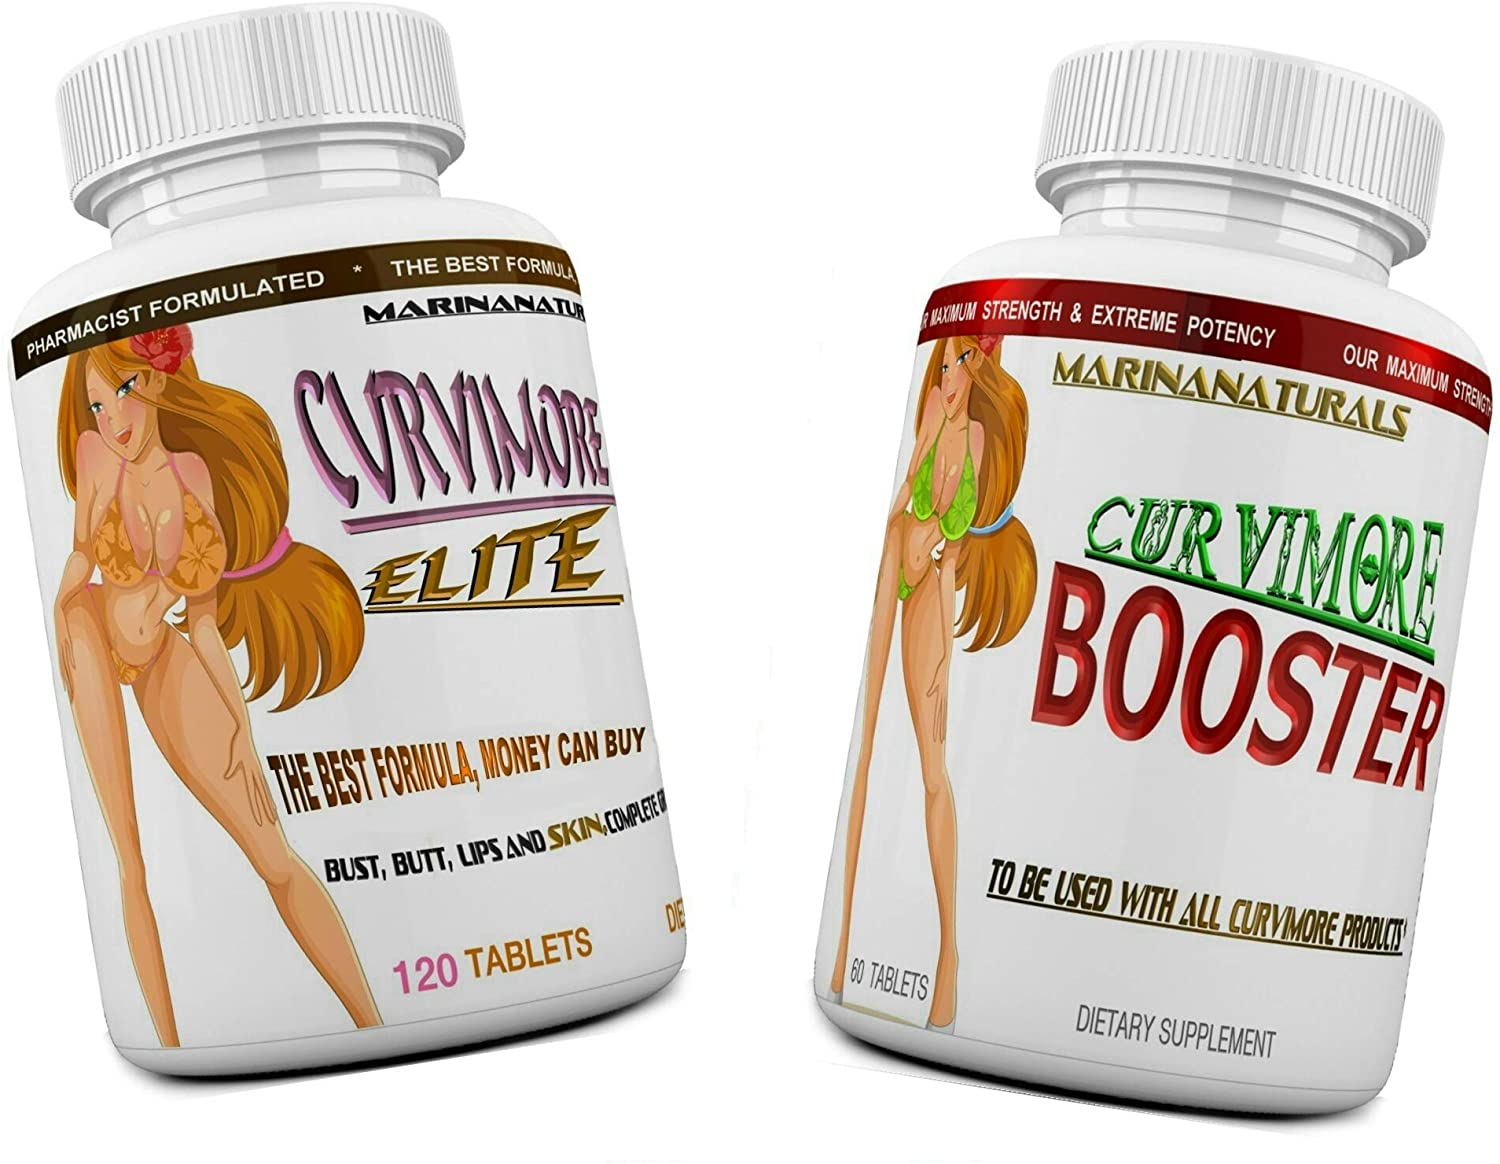 CURVIMORE Elite Complete Our Advanced Natural Breast Enlargement, Butt Enhancement, Bust Enhancement Lip Plumping & Skin Tightening Pills – Fuller Breasts, Booty & Brazilian Butts. 3-Month Course